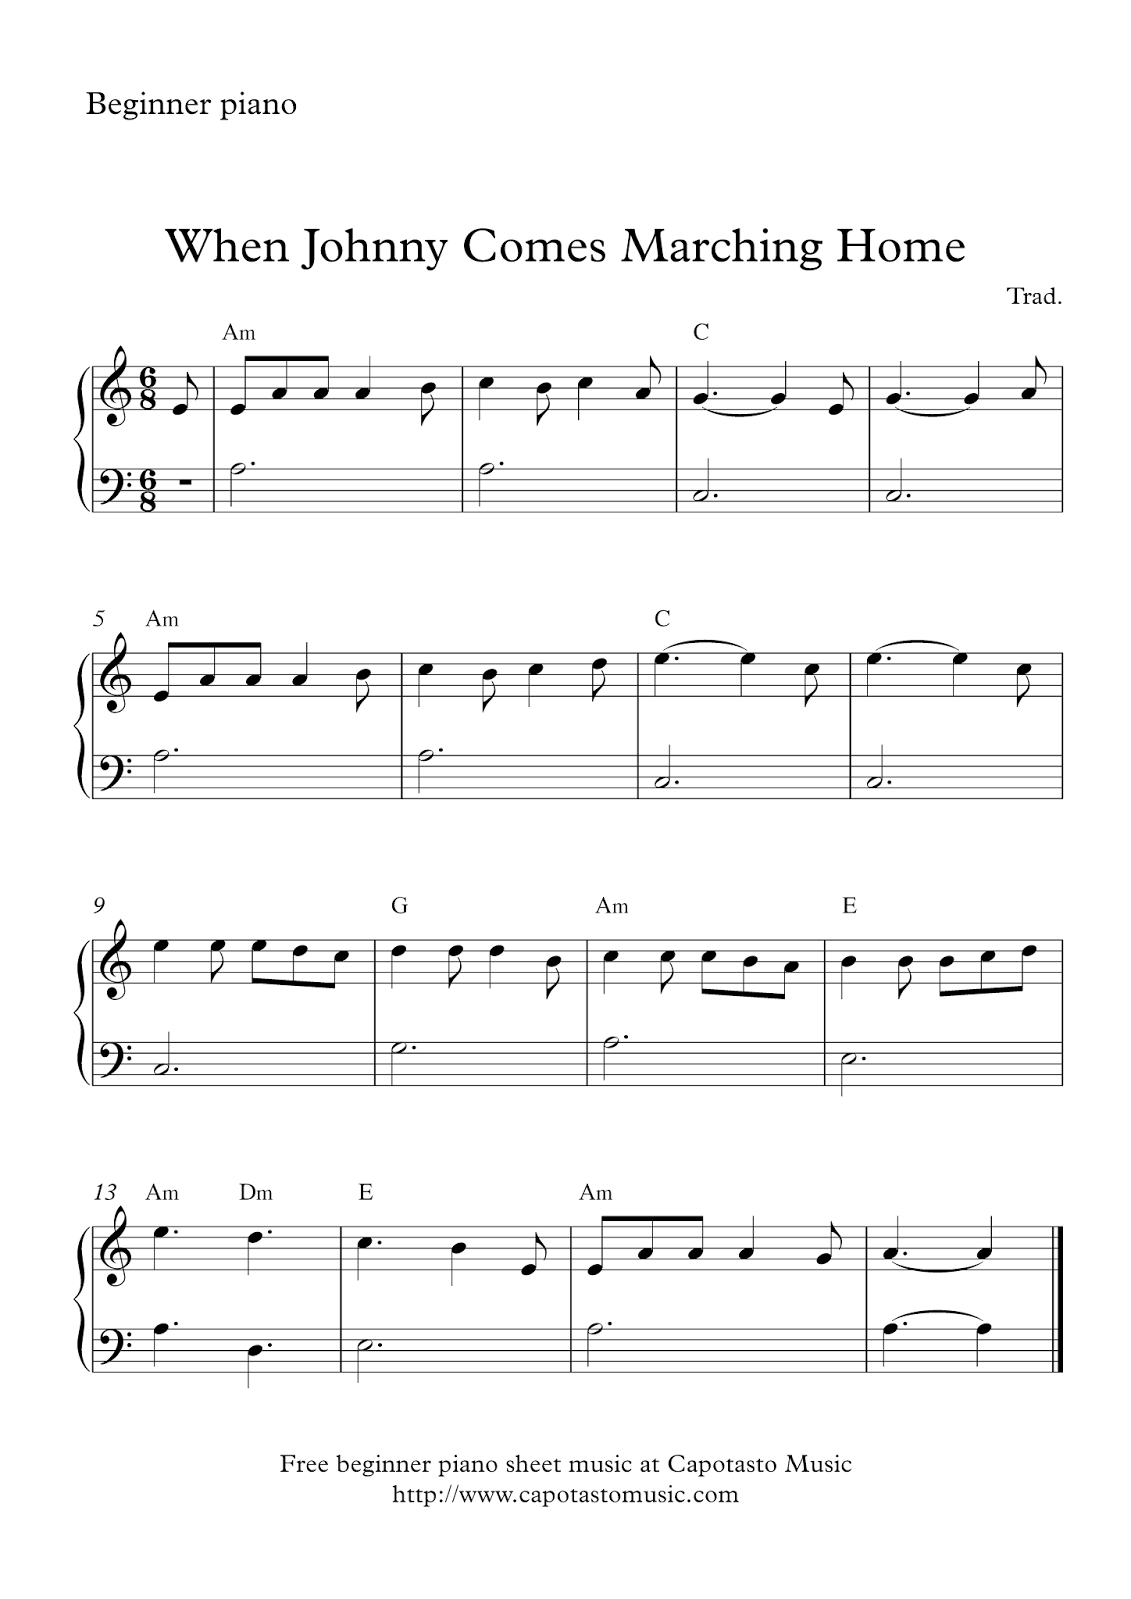 Free easy beginners piano sheet music when johnny comes marching